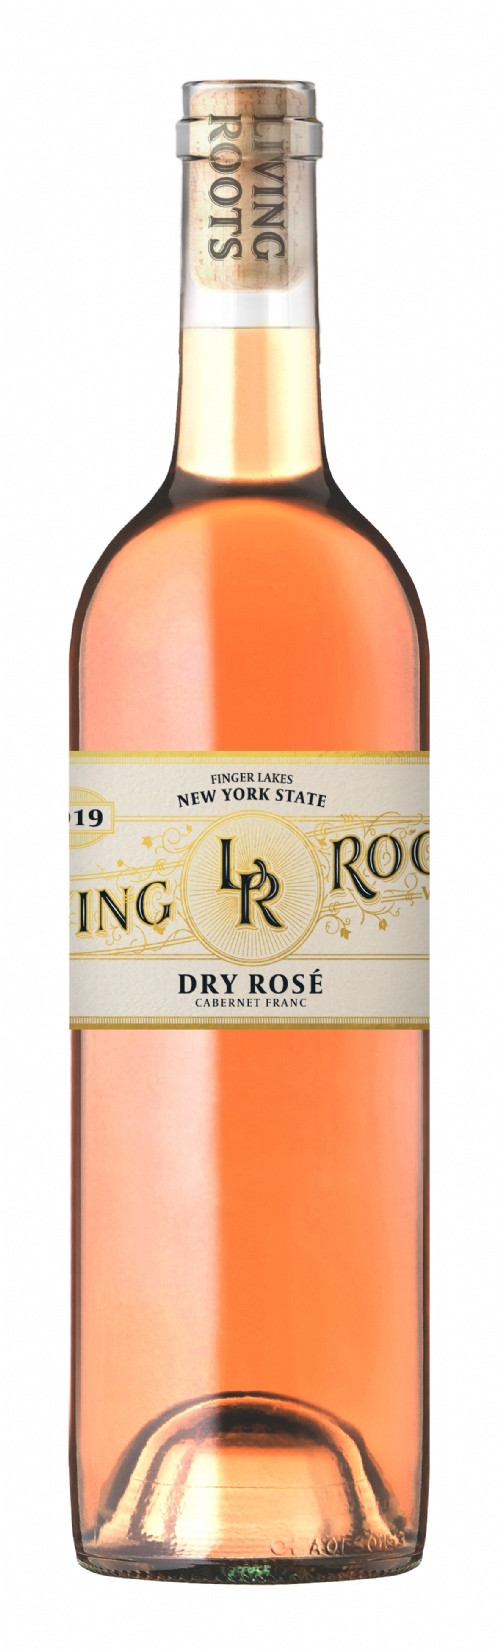 2019 Living Roots Dry Rose Cabernet Franc 750ml